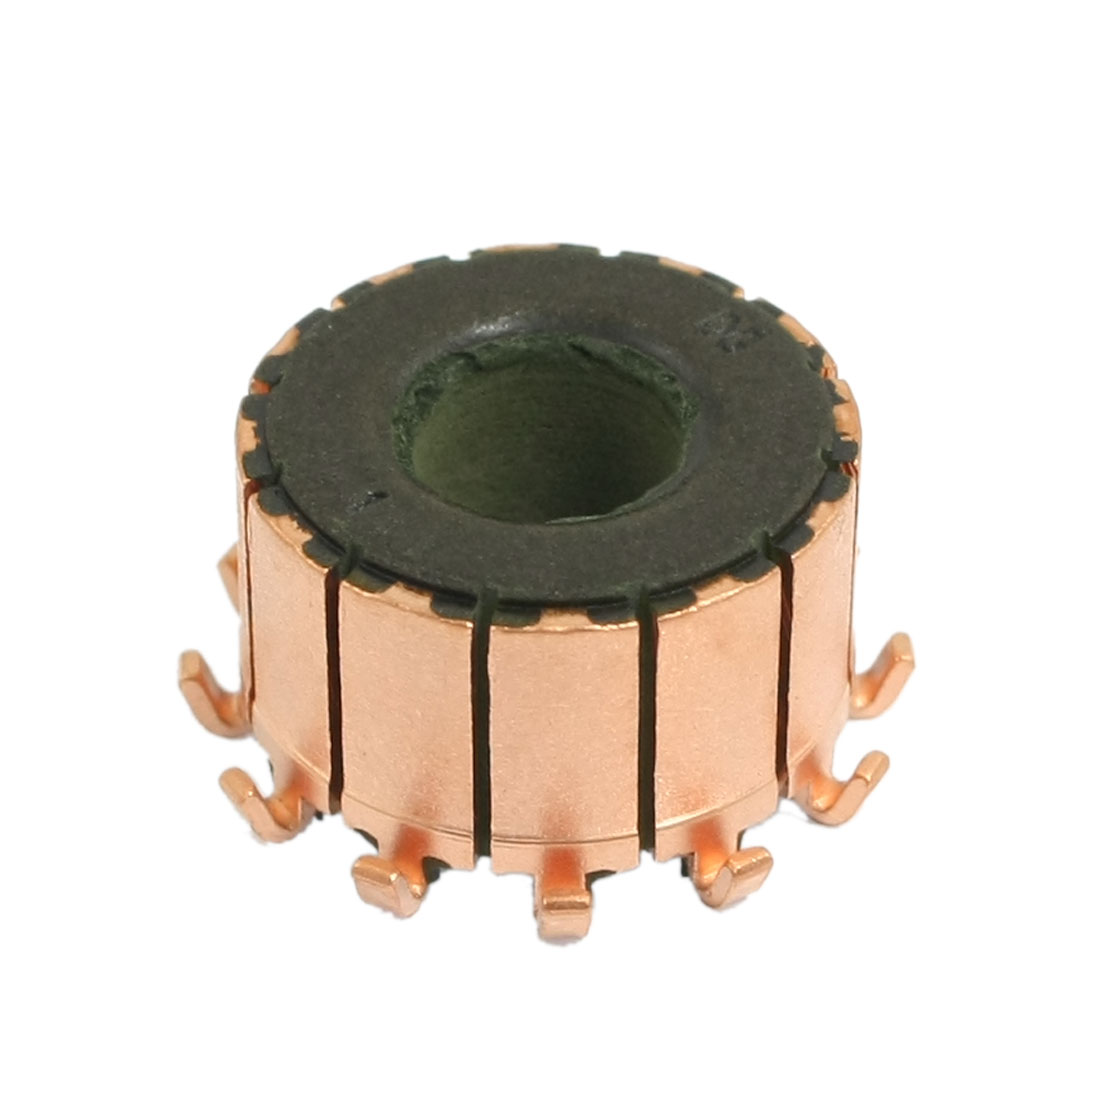 8mm x 18.9mm x 11.7mm Copper Case Auto Alternator Motor Power Tool Commutator